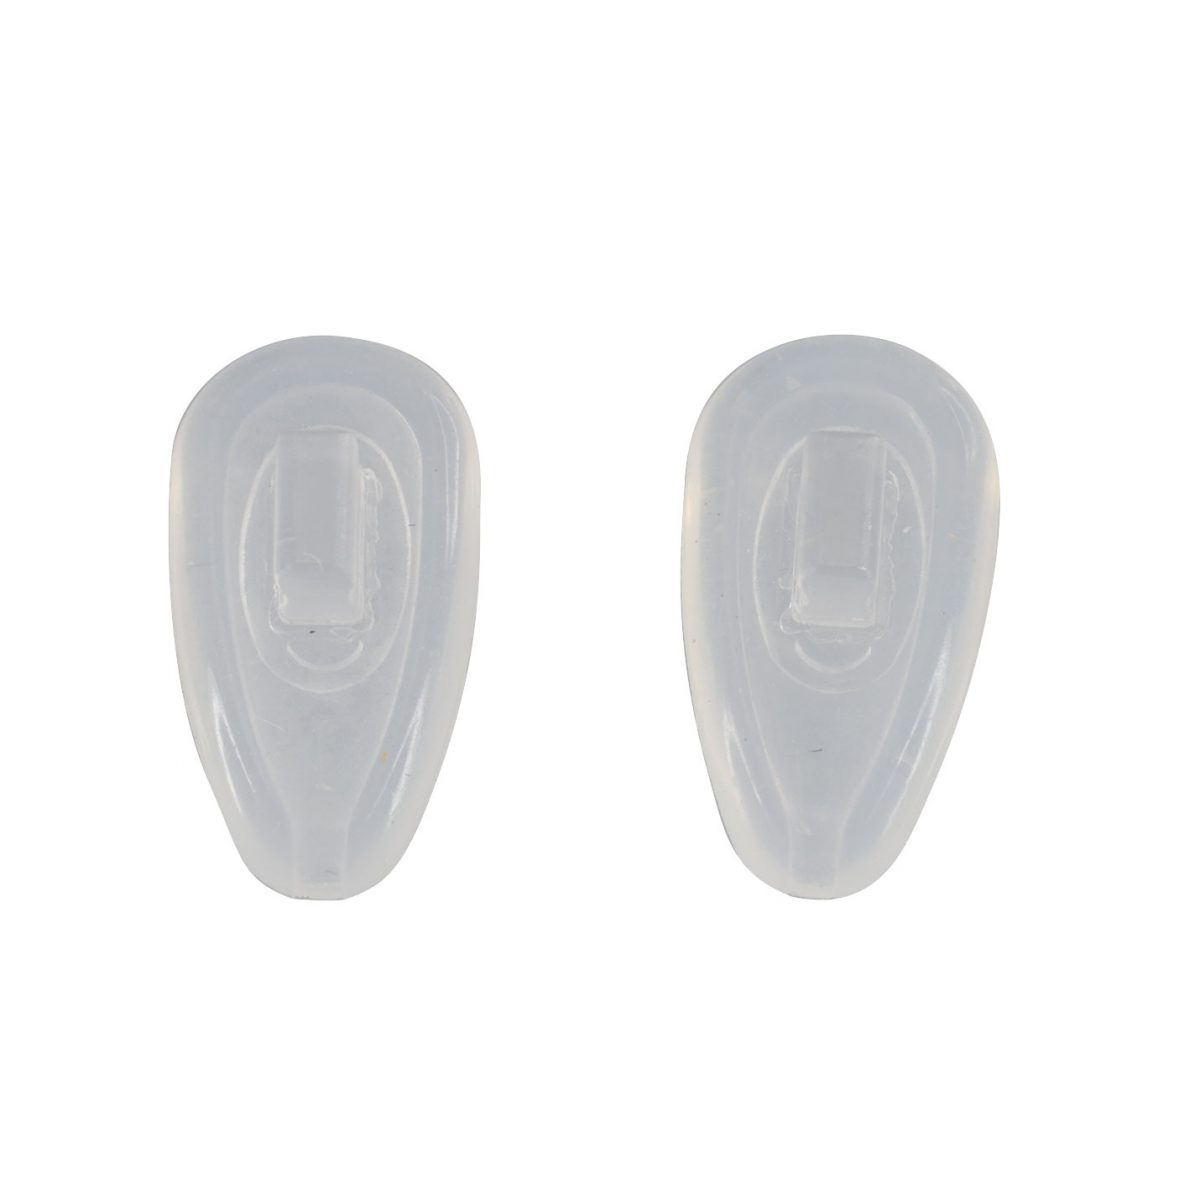 Air Active Push-On Silicone Nose Pads